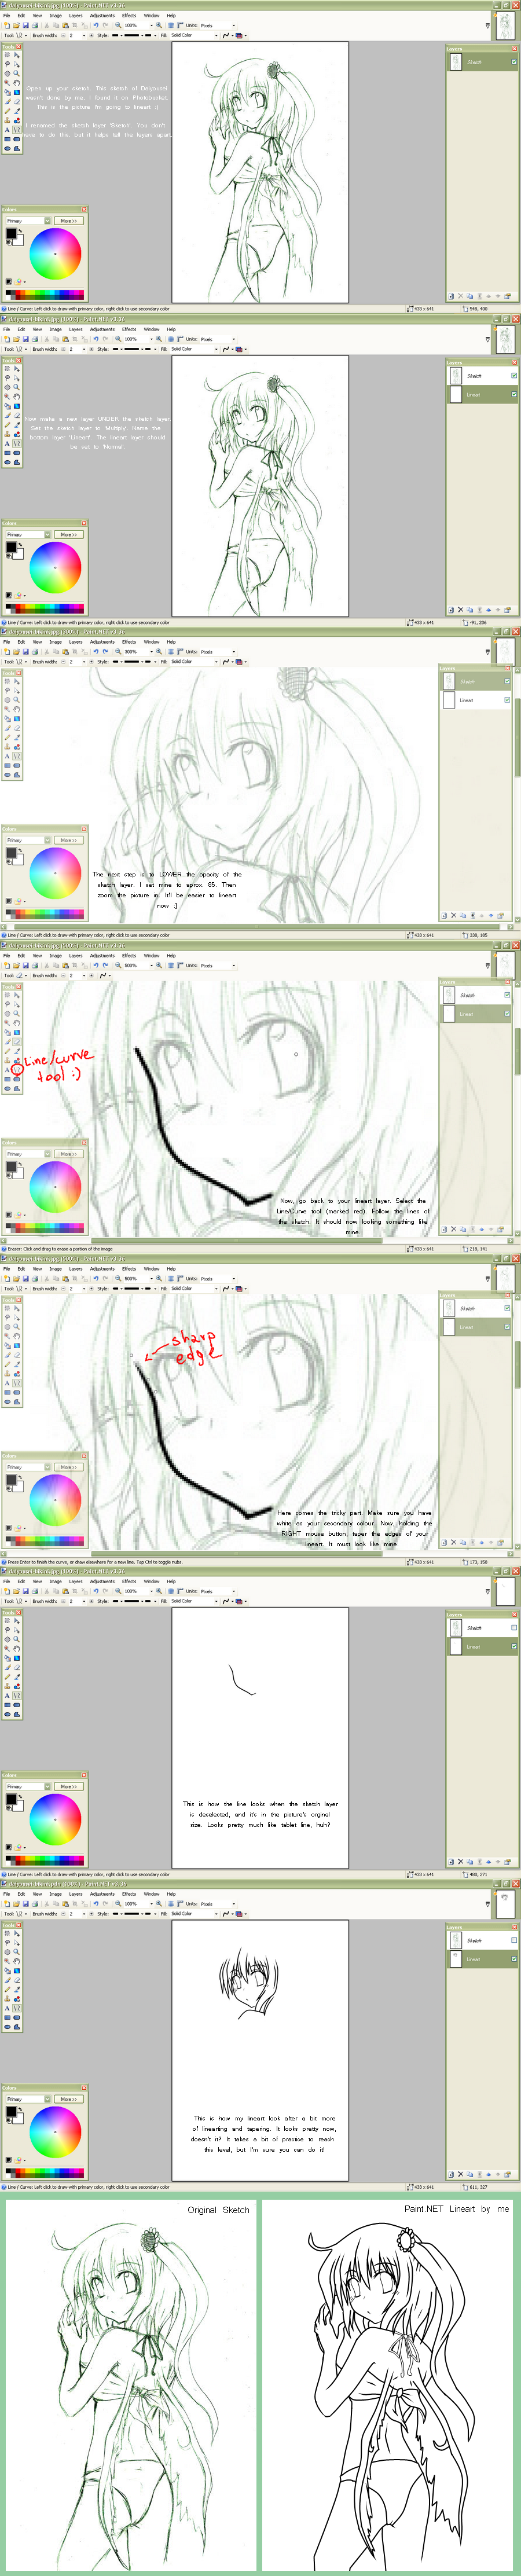 Paint lineart tutorial by demonedaway on deviantart net lineart tutorial by demonedaway baditri Gallery